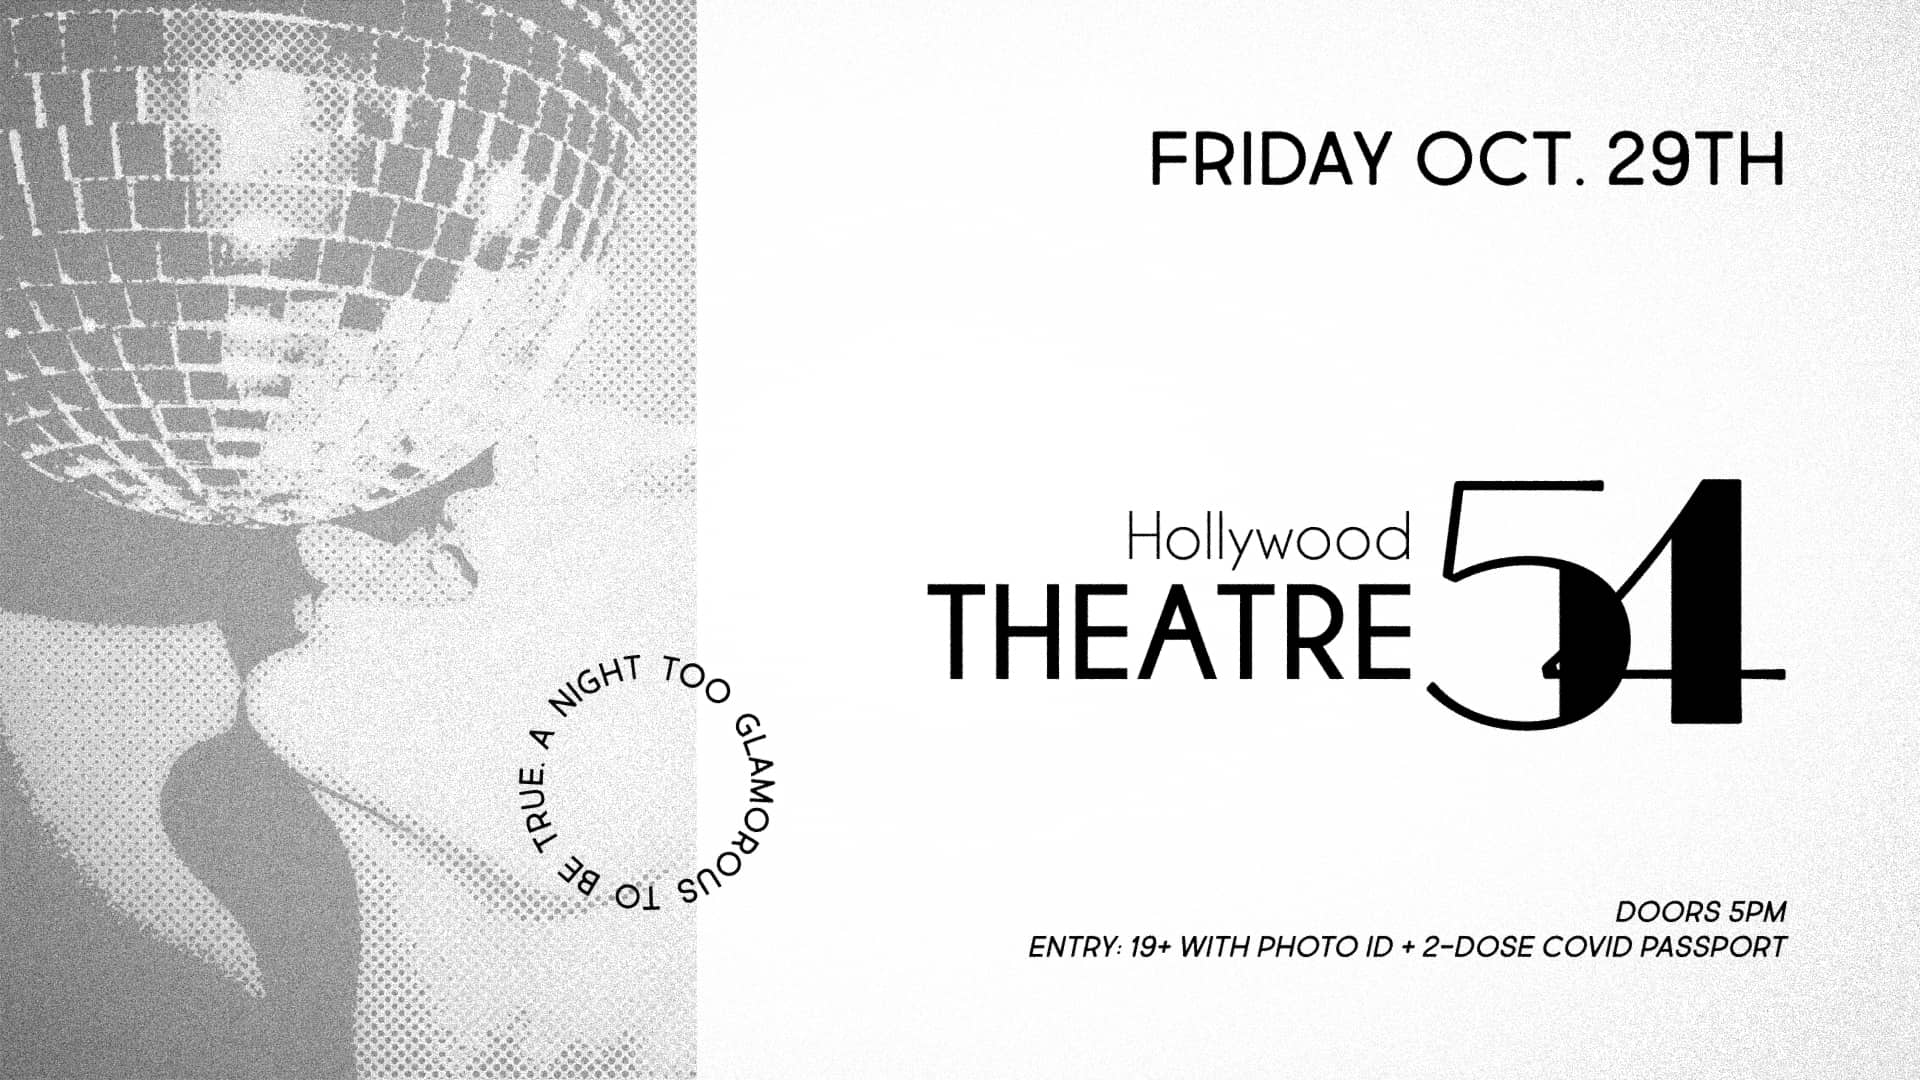 HOLLYWOOD THEATRE 54